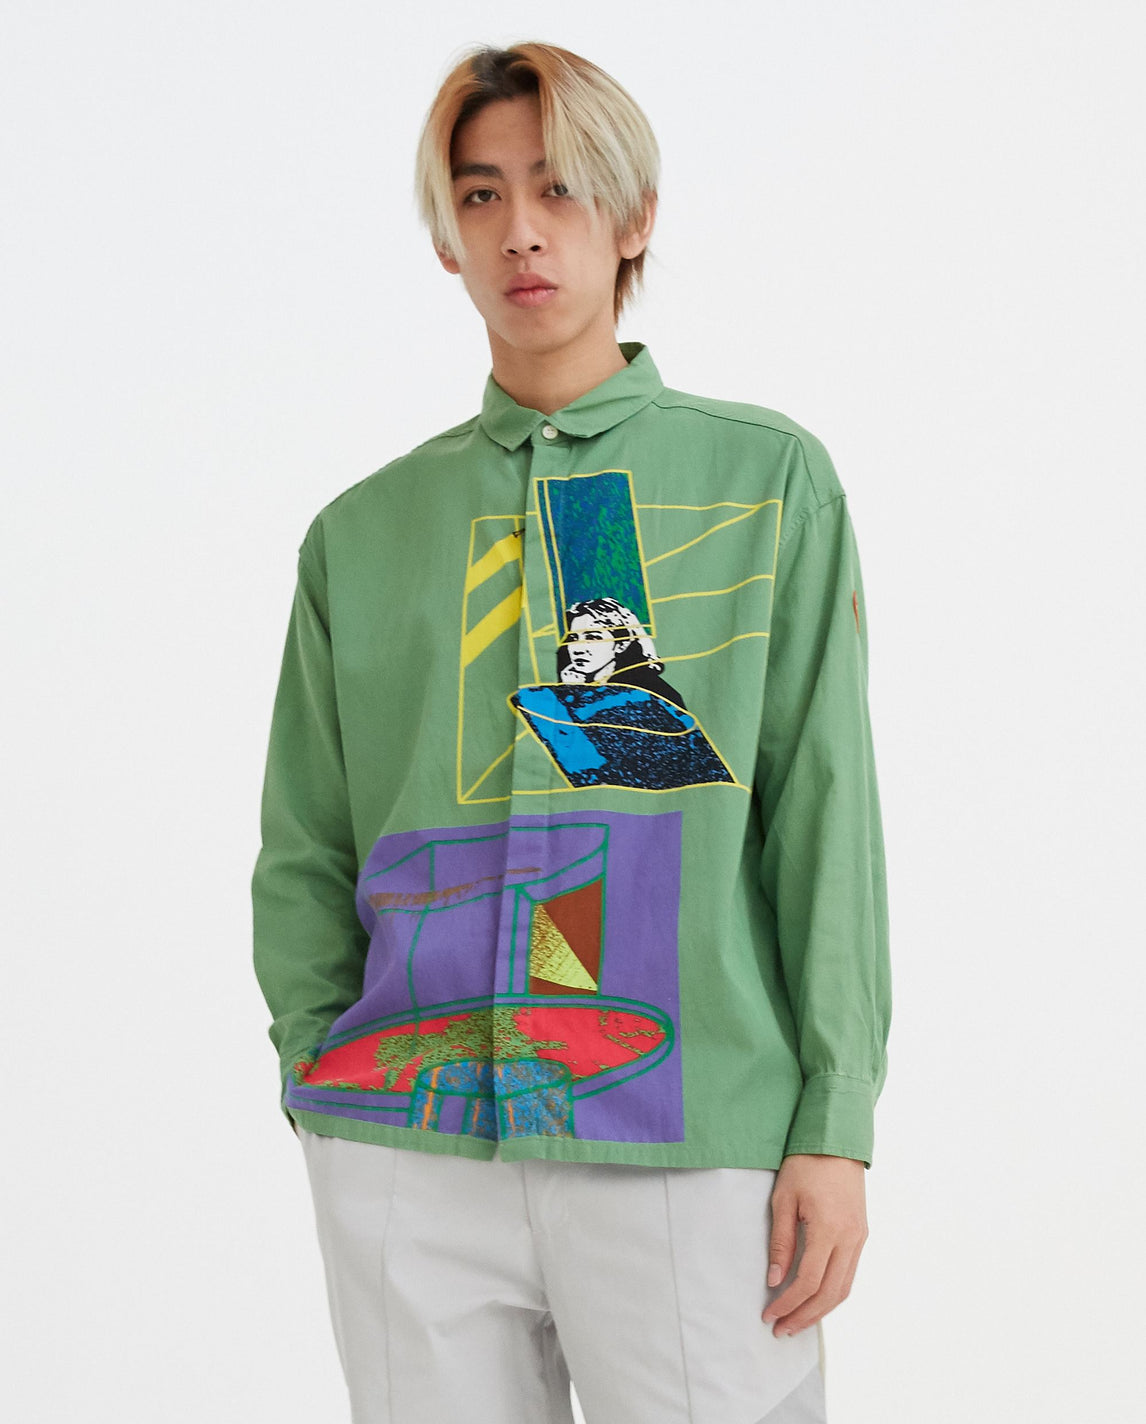 Authenticity Big Shirt - Green UNISEX CAV EMPT